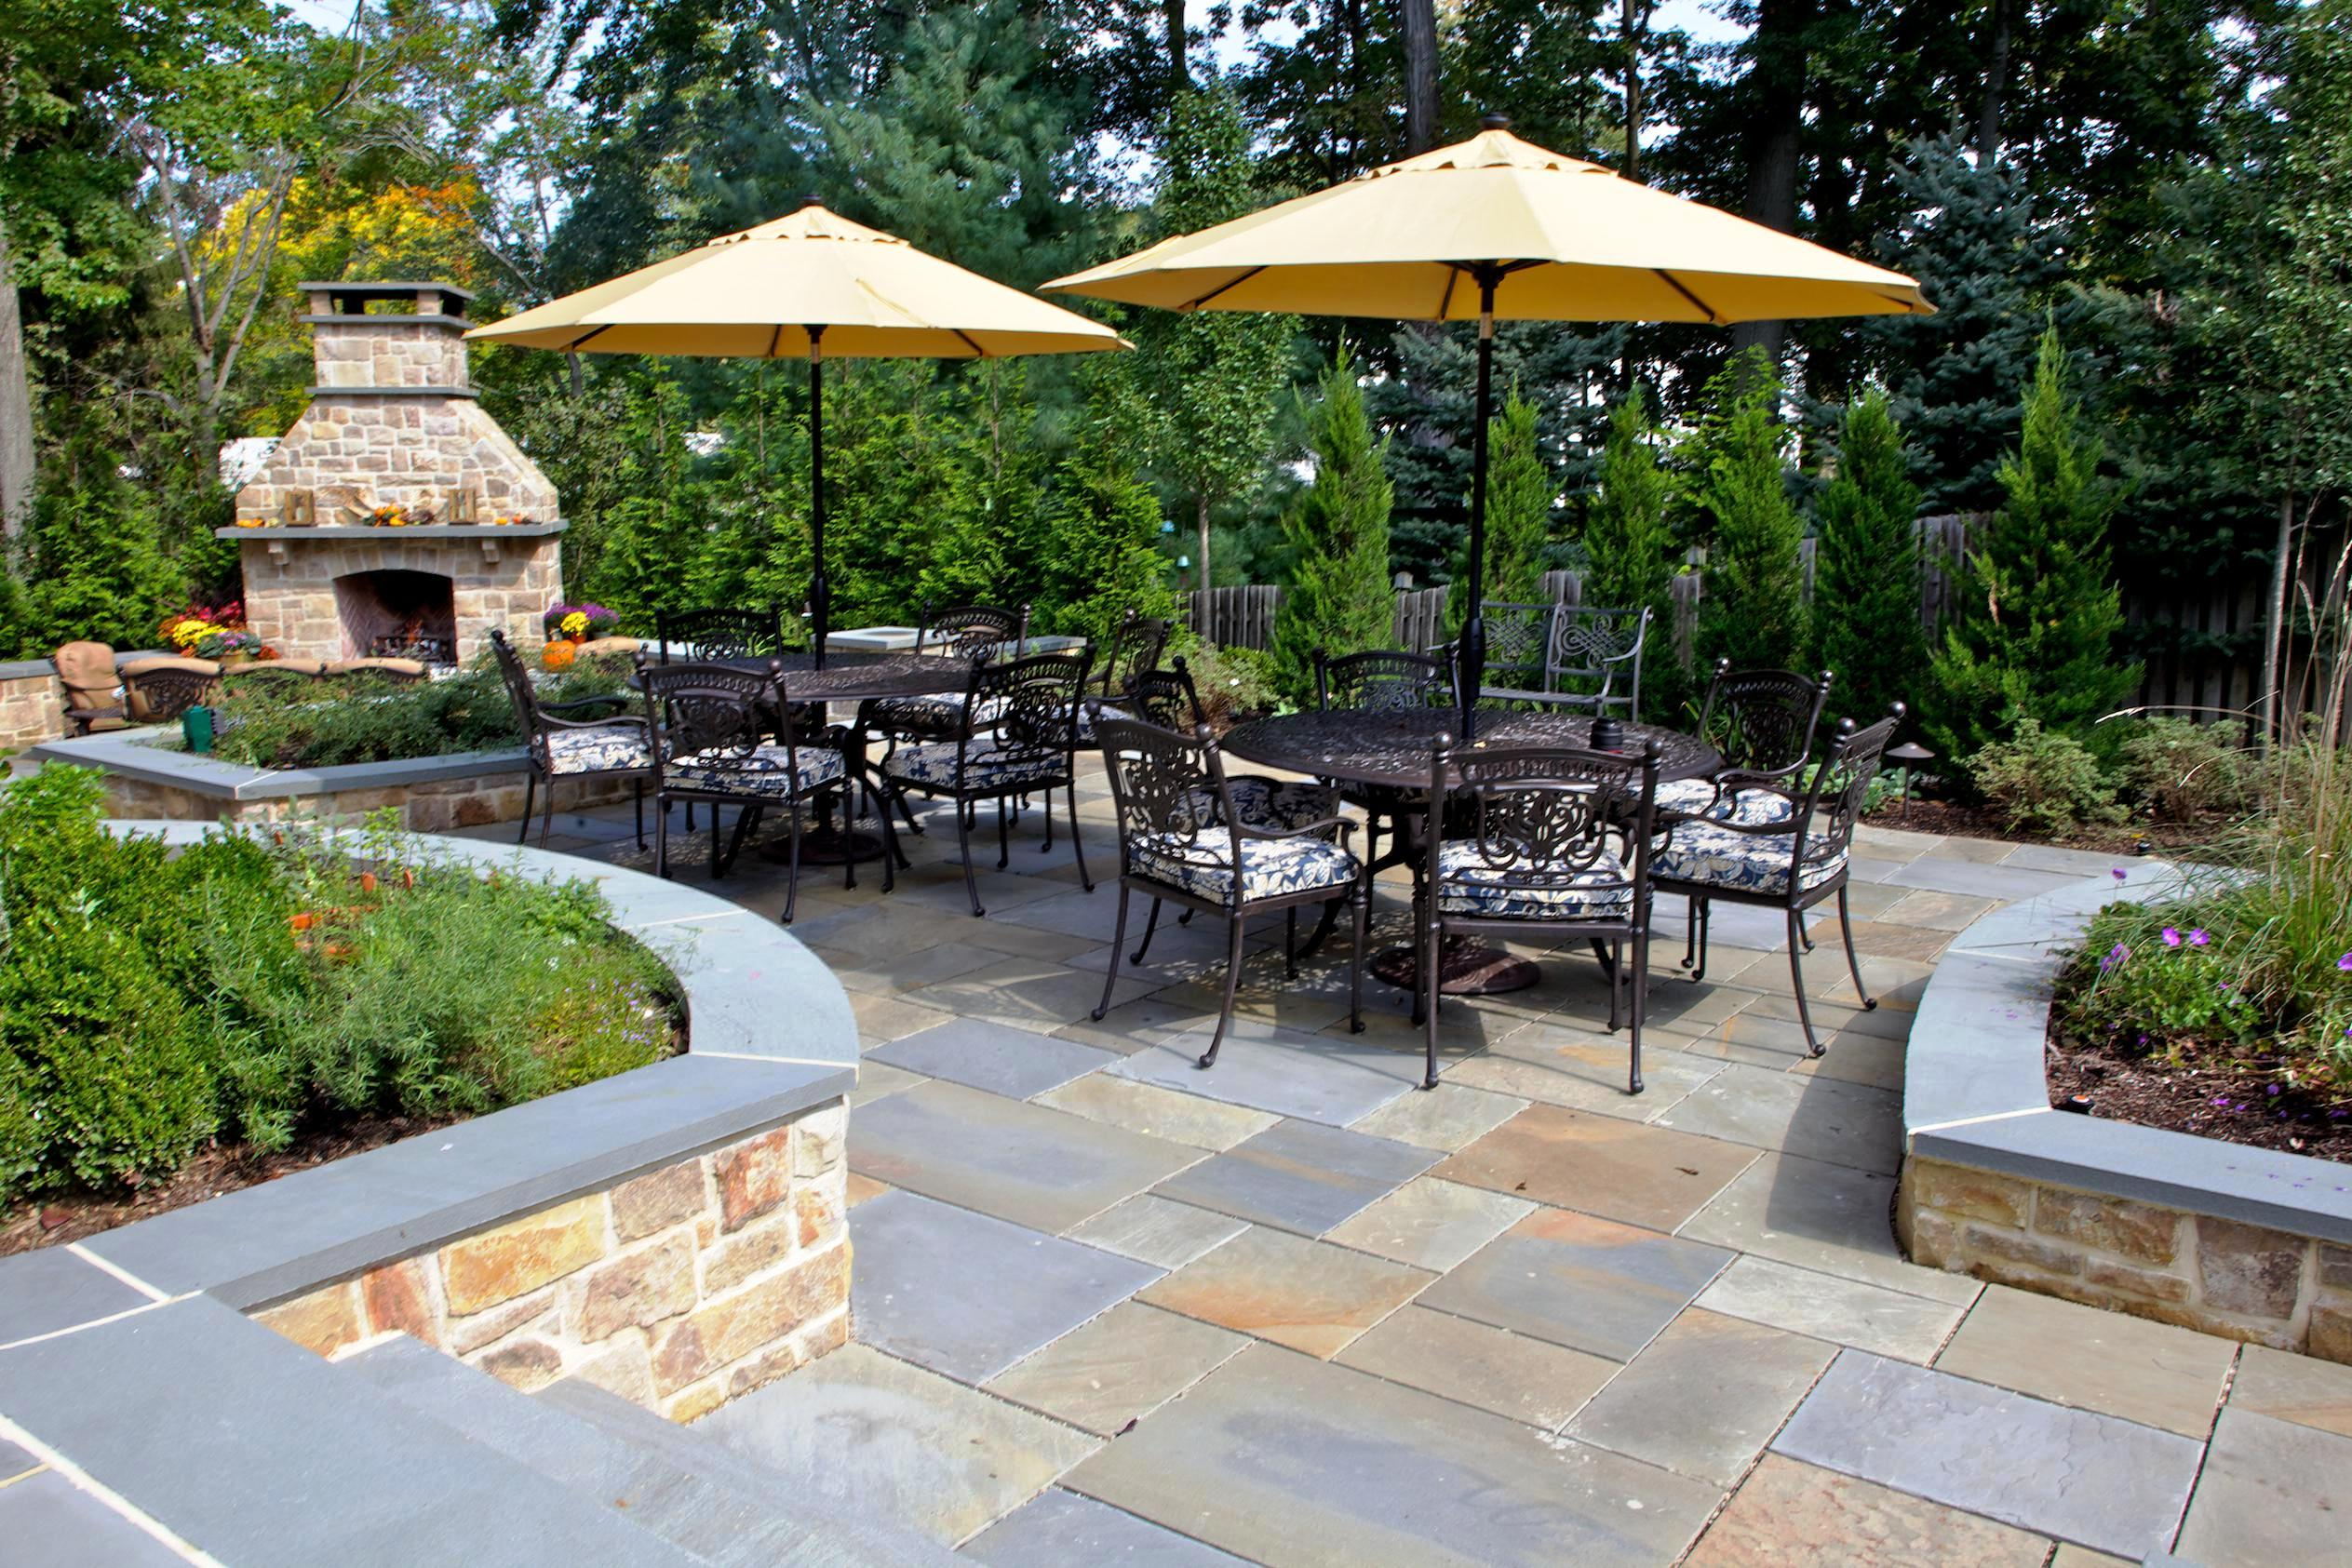 Paver Patio Ideas On A Budget : Schmidt Gallery Design ... on Yard Paver Ideas  id=51914